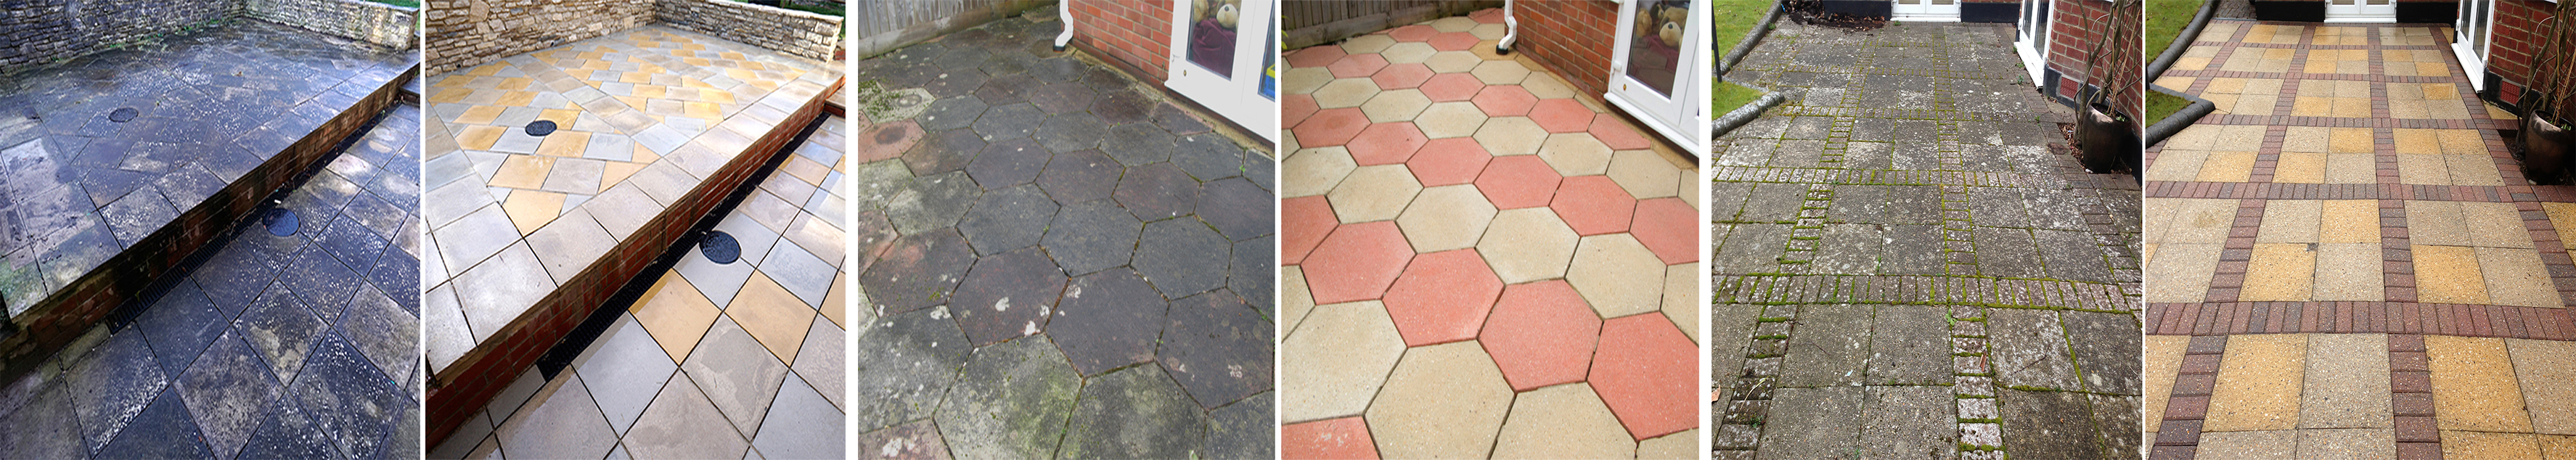 Patio Cleaning Services in Ferndown, Dorset